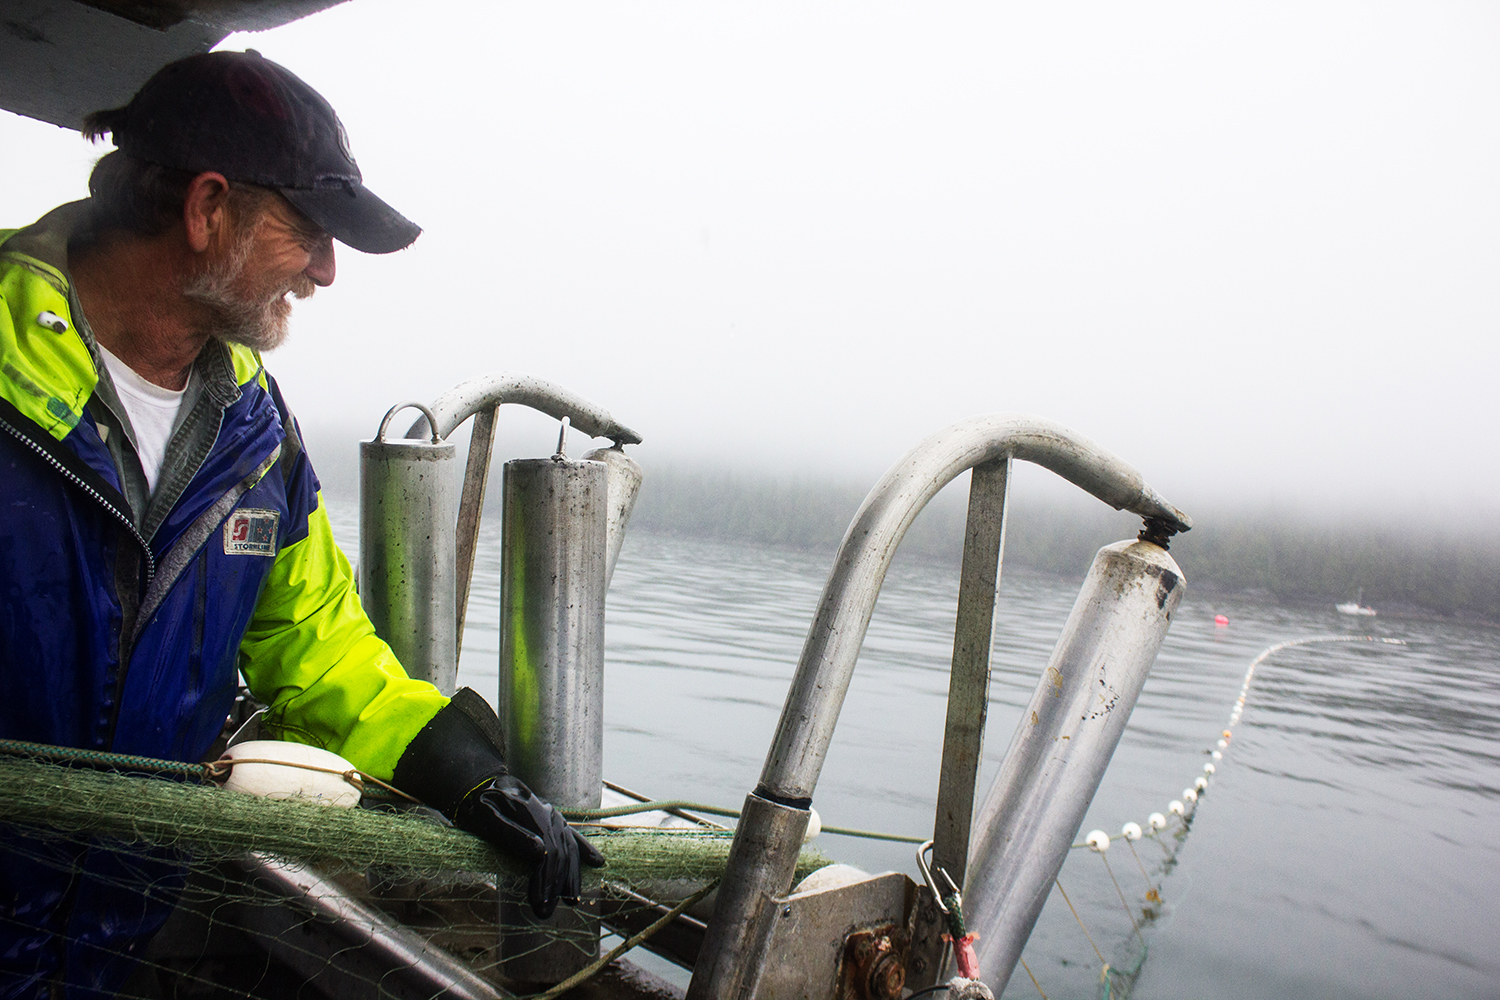 Bob Burkosky, Captain of the F/V BC Maid.